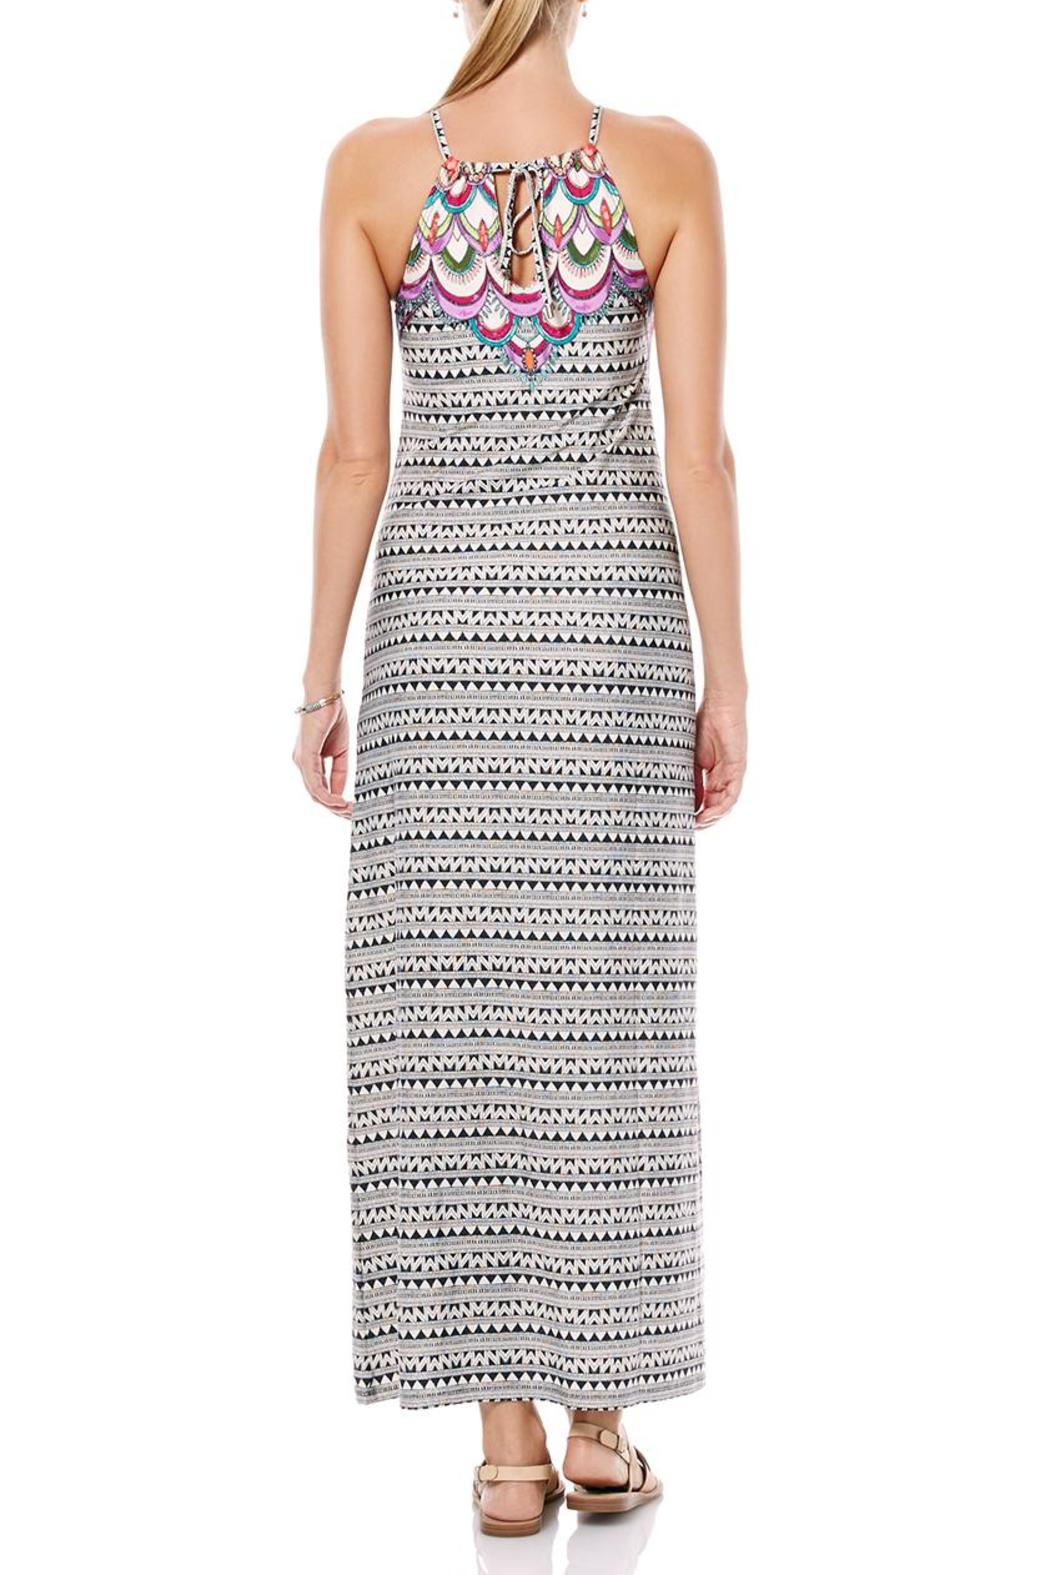 Laundry by Shelli Segal Maxi Dress - Front Full Image